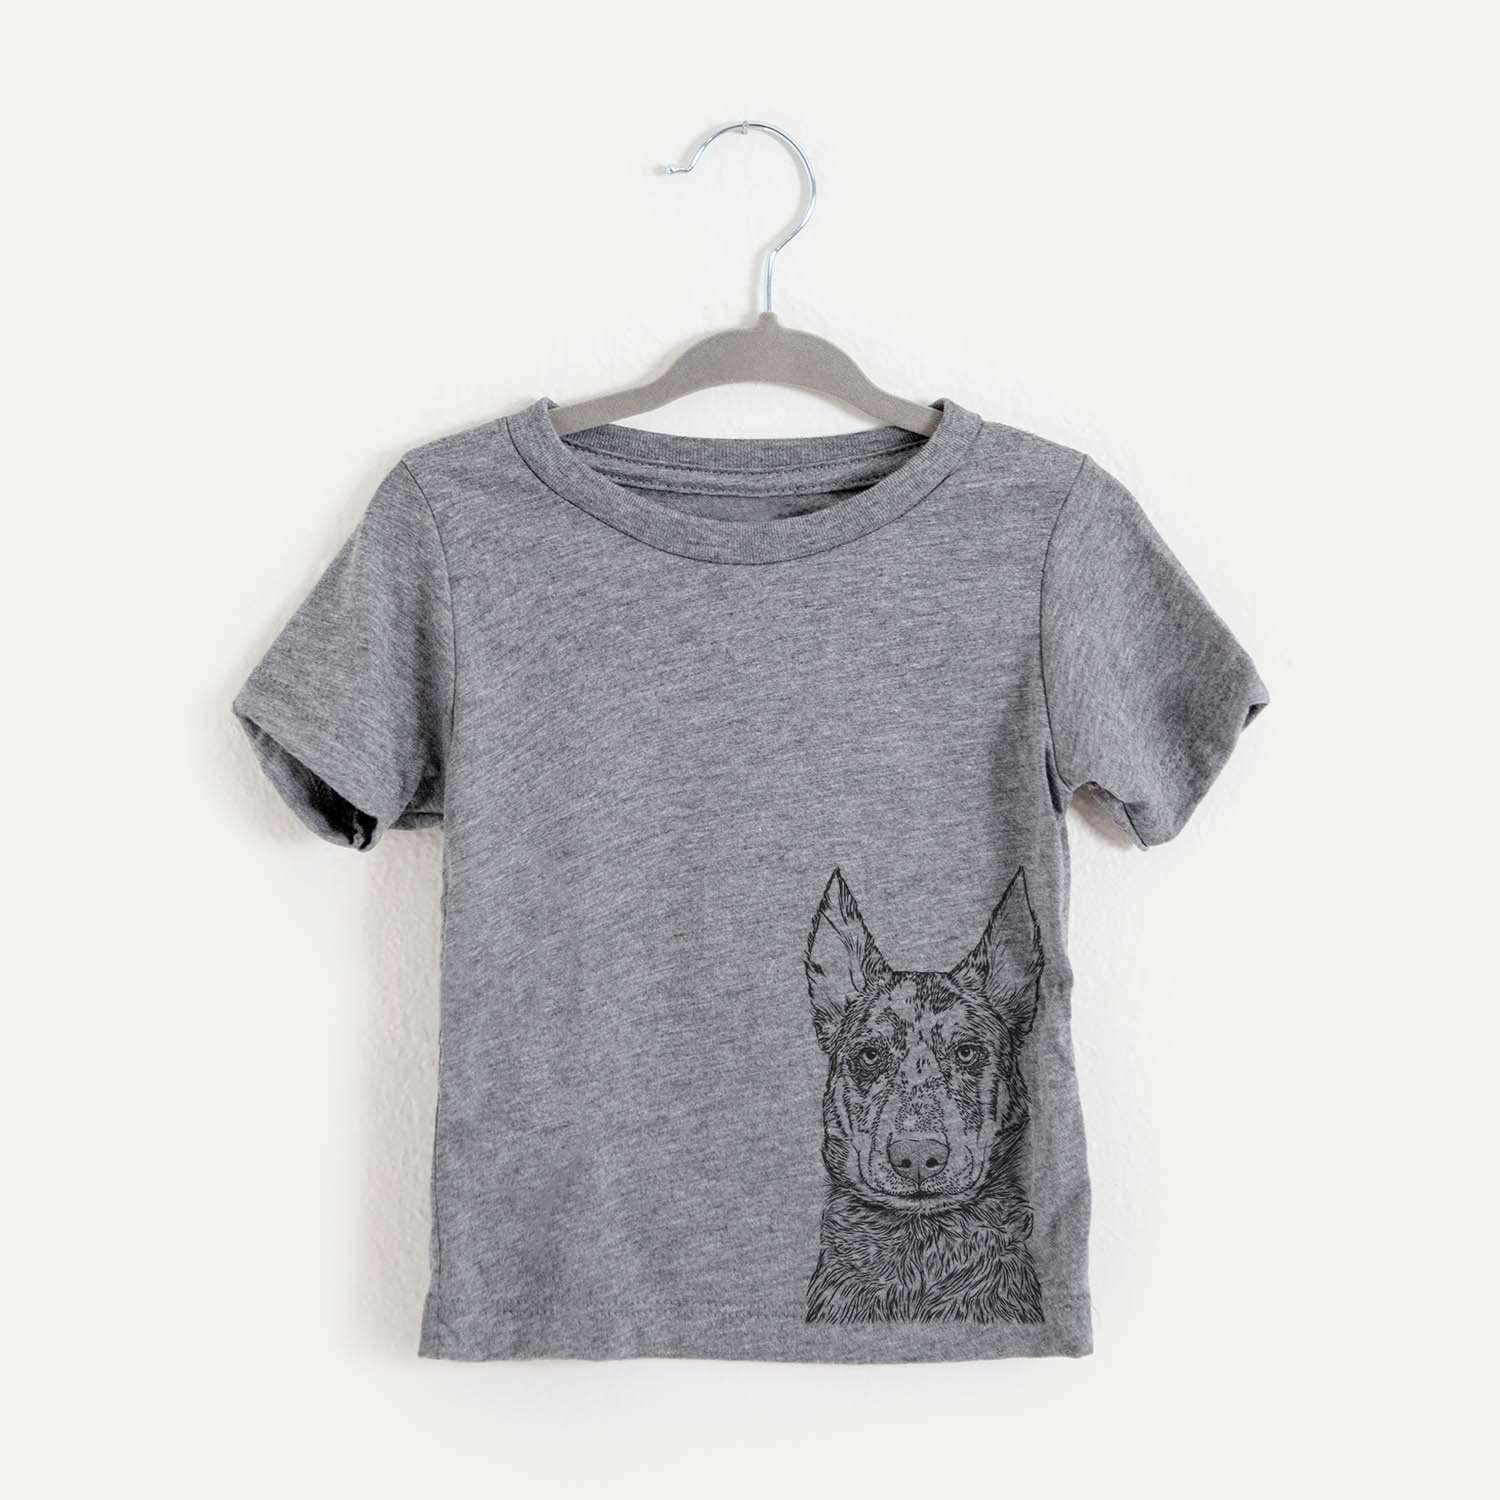 Riggs the Beauceron - Kids/Youth/Toddler Shirt